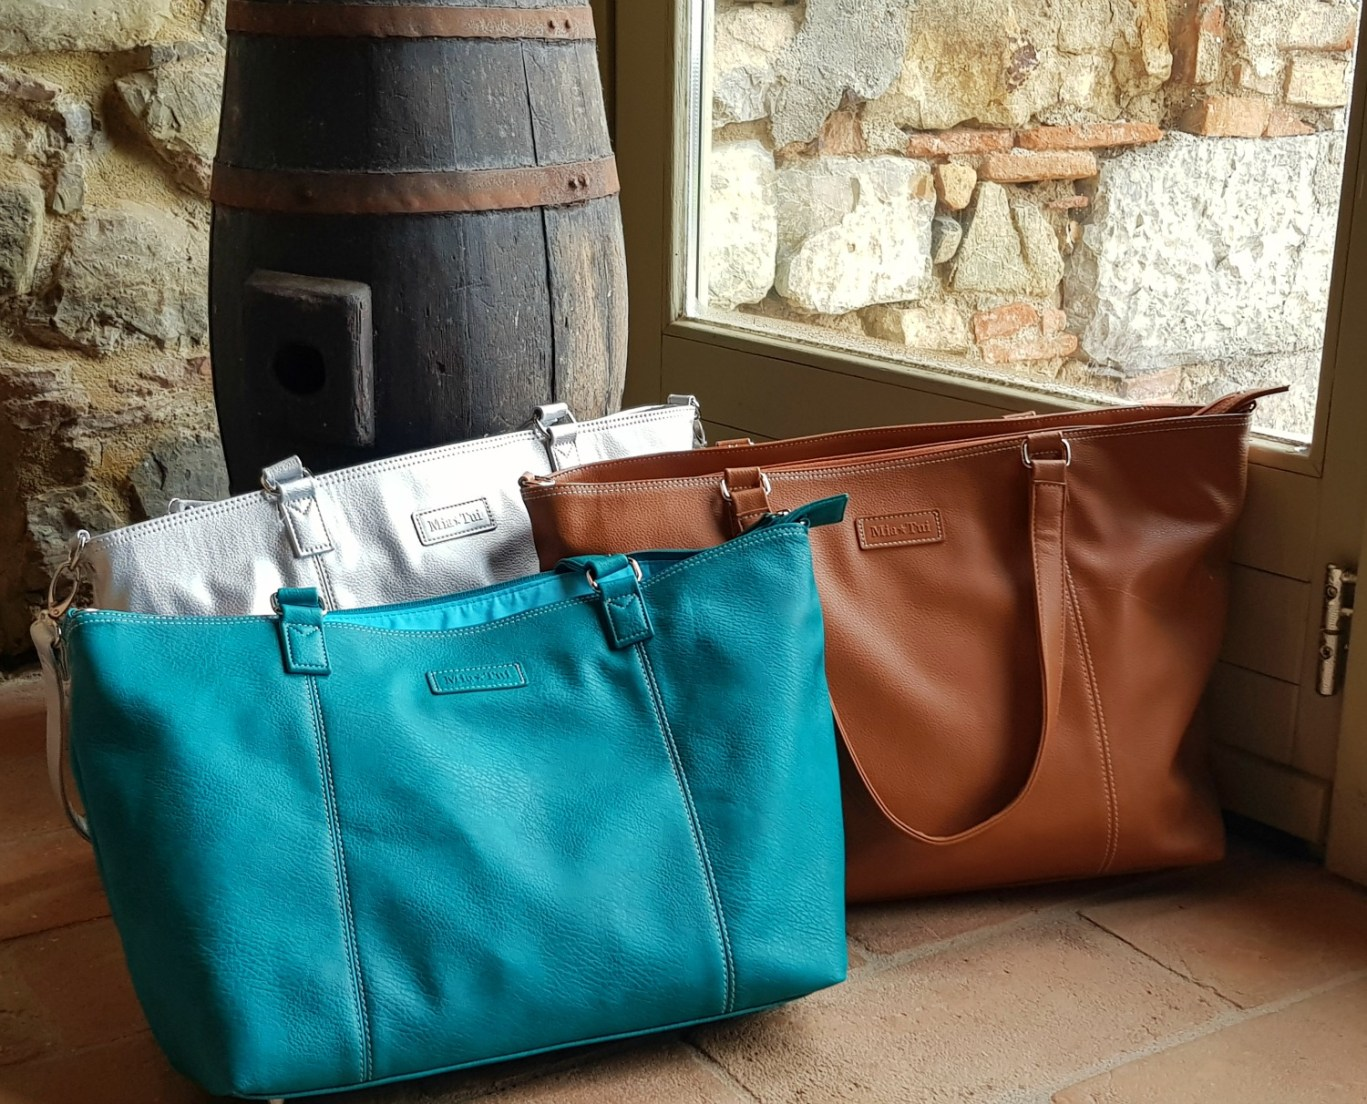 572f59aed4a Green Mini Jen bag with matching silver and tan versions in a villa in  Tuscany -